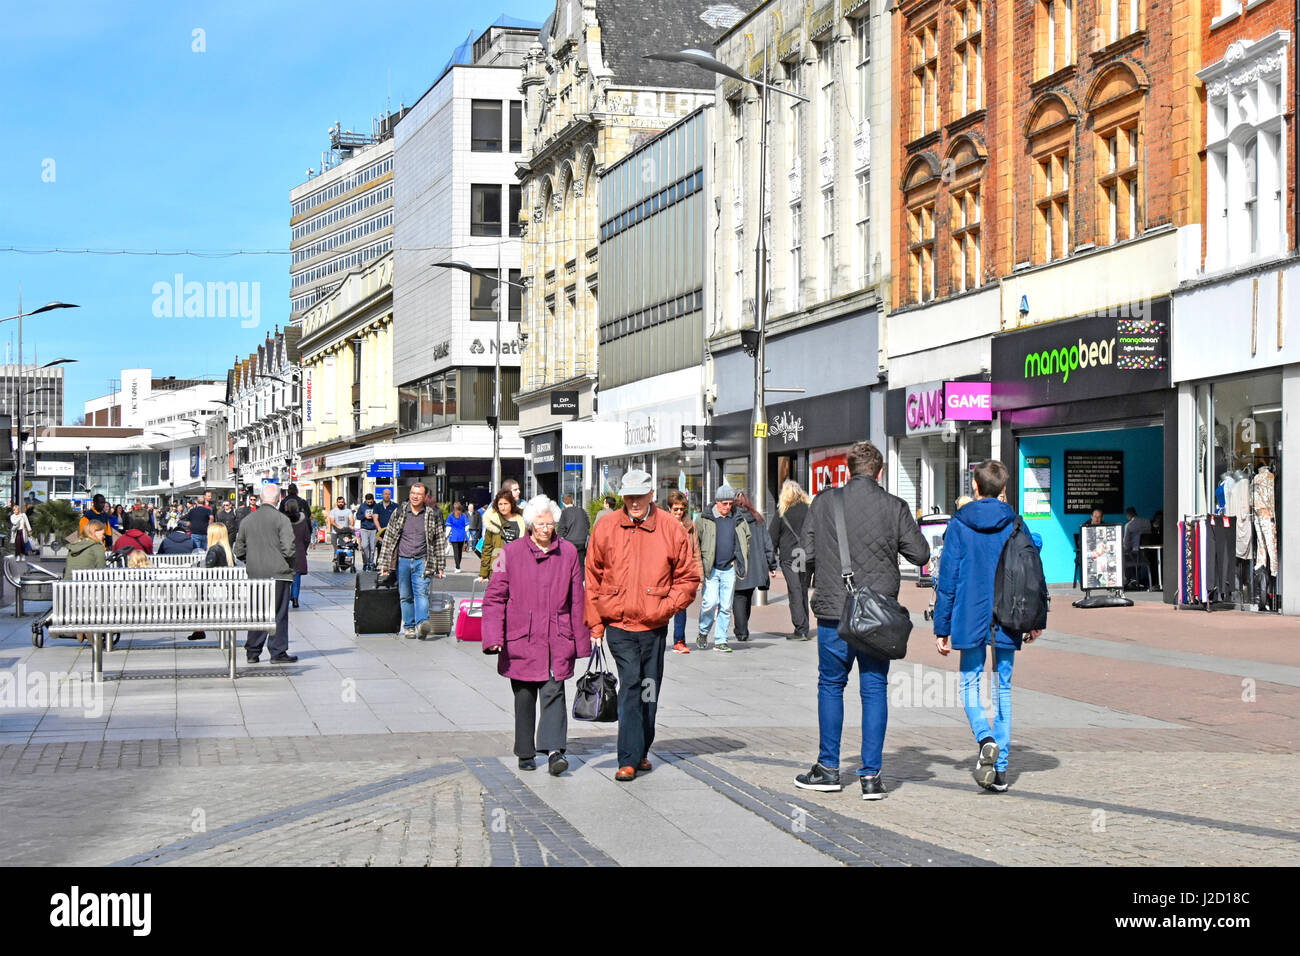 Shopping in Southend on Sea England UK high street retail shops & shoppers town centre pedestrianised shop front - Stock Image